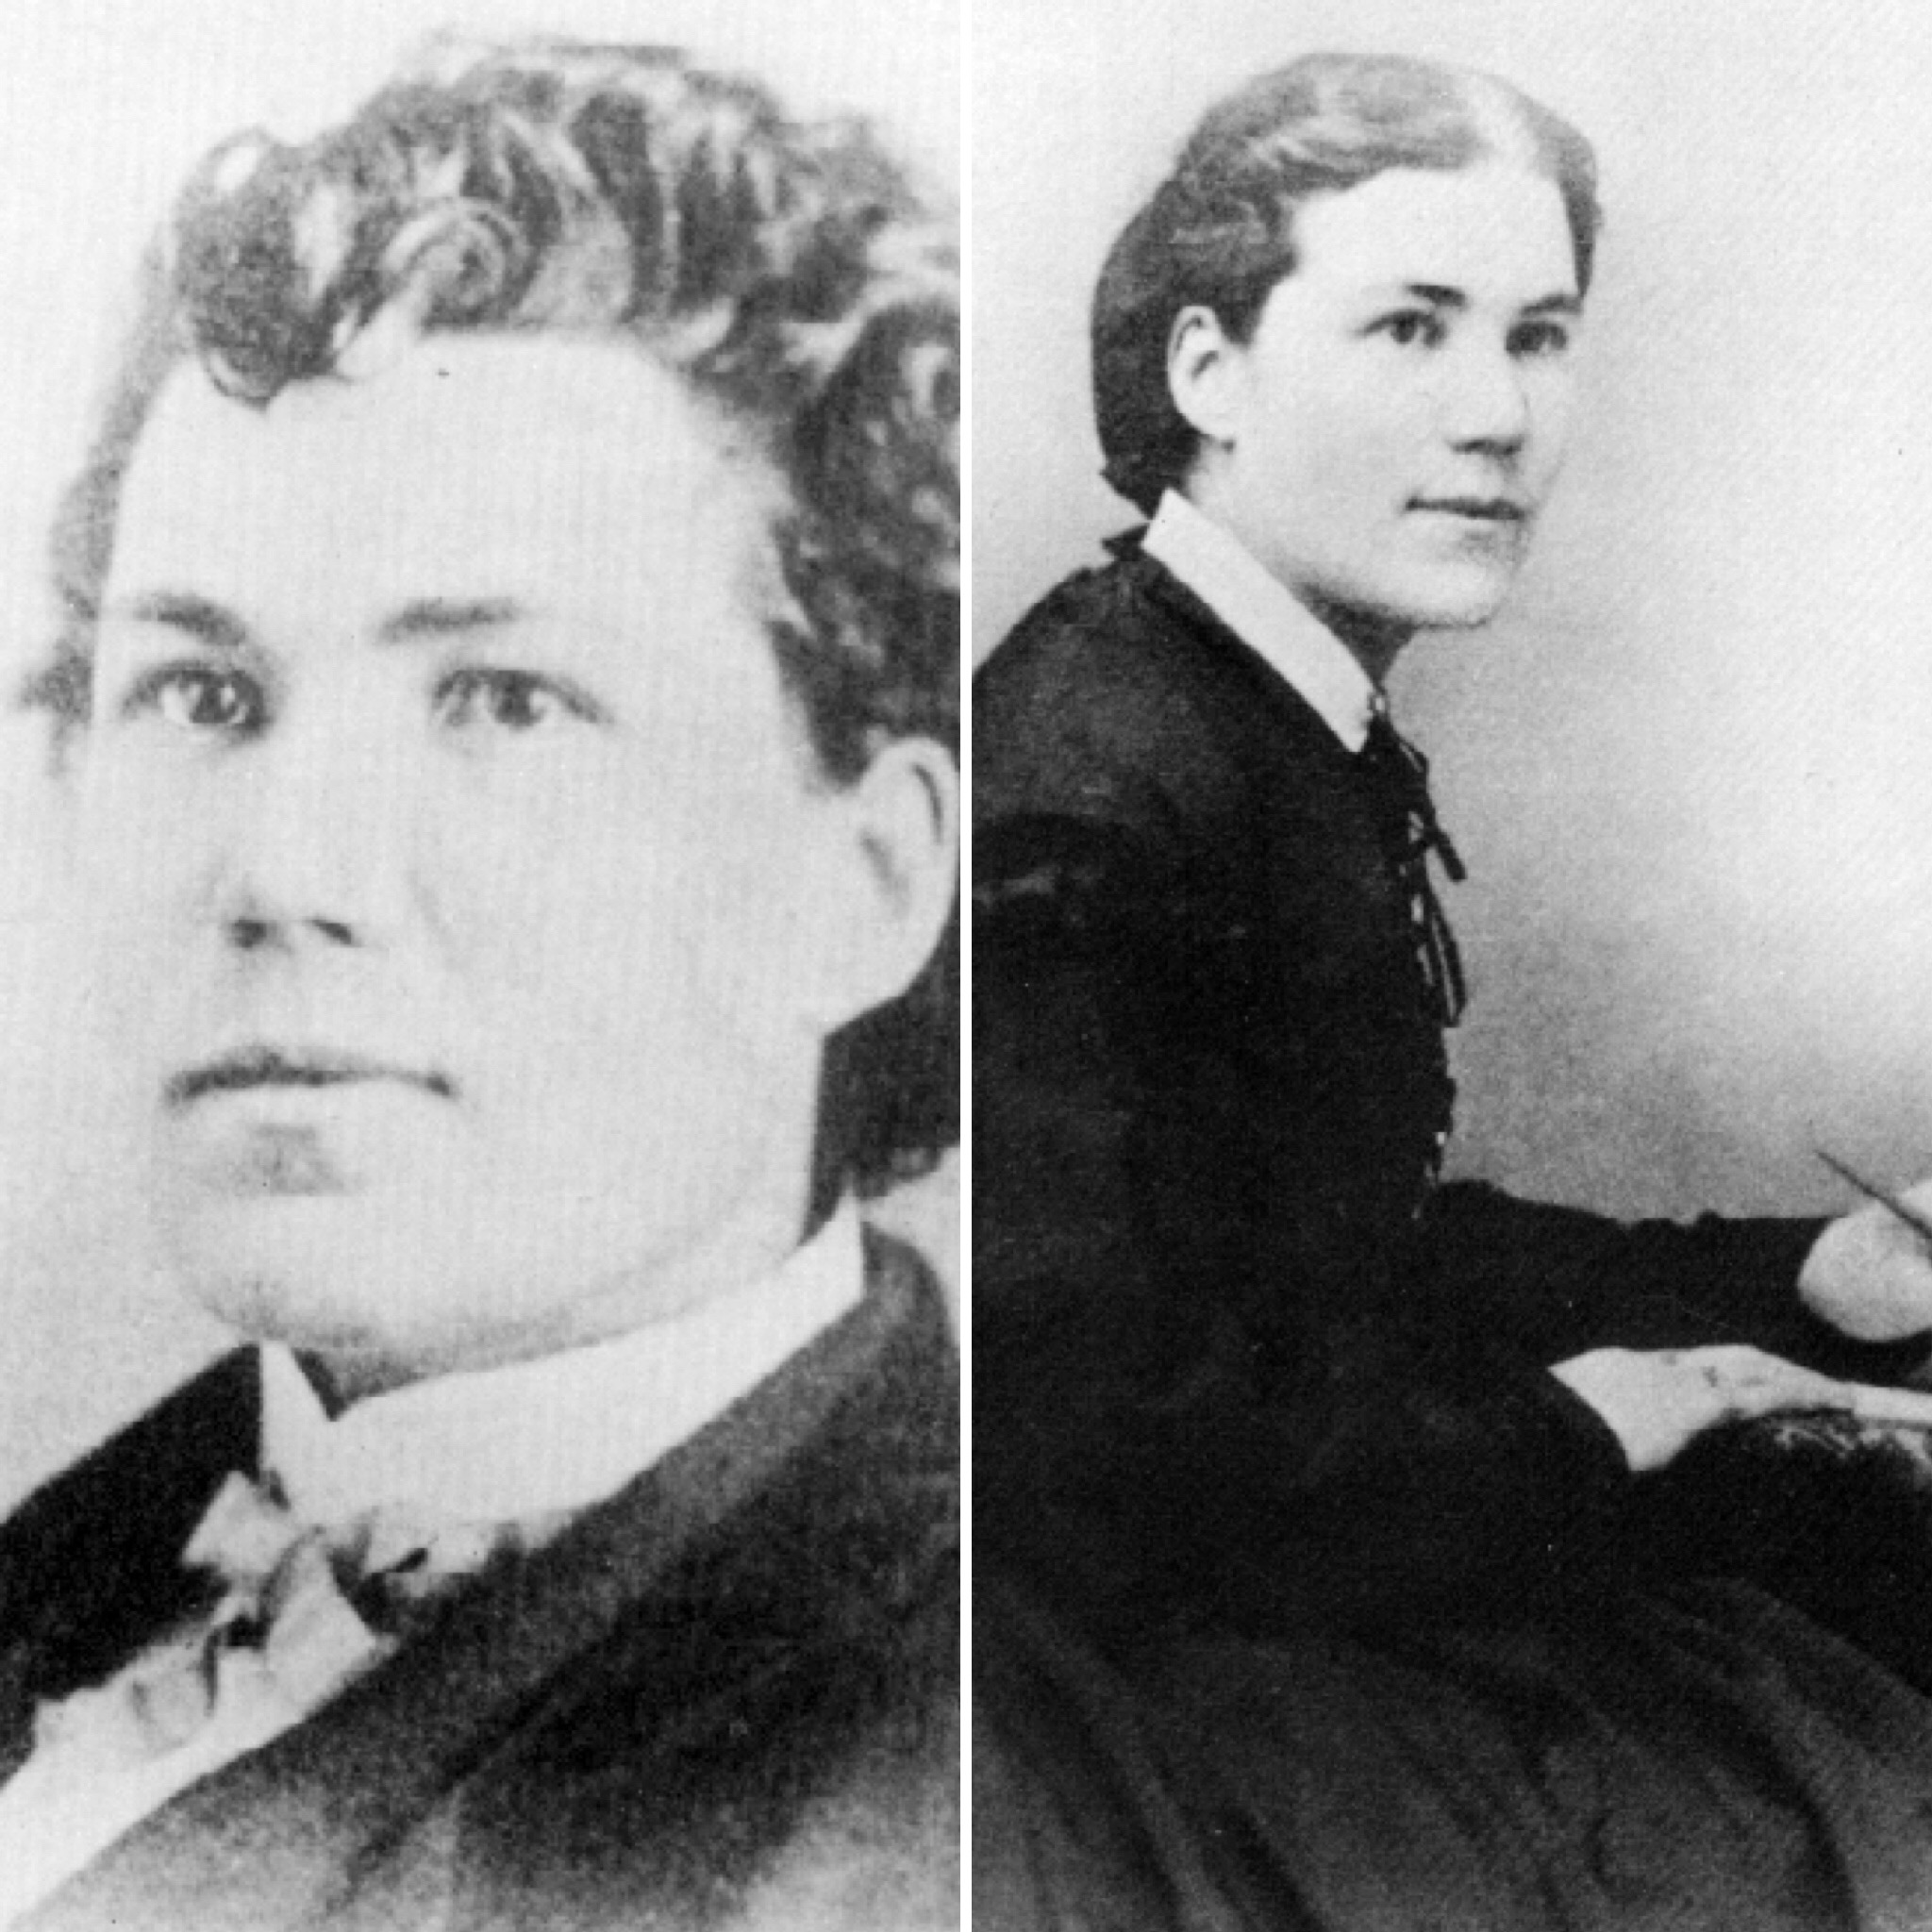 Emma's image, before life as a man and after. A dashing figure in either set of attire! - Courtesy of the Archives of Michigan.